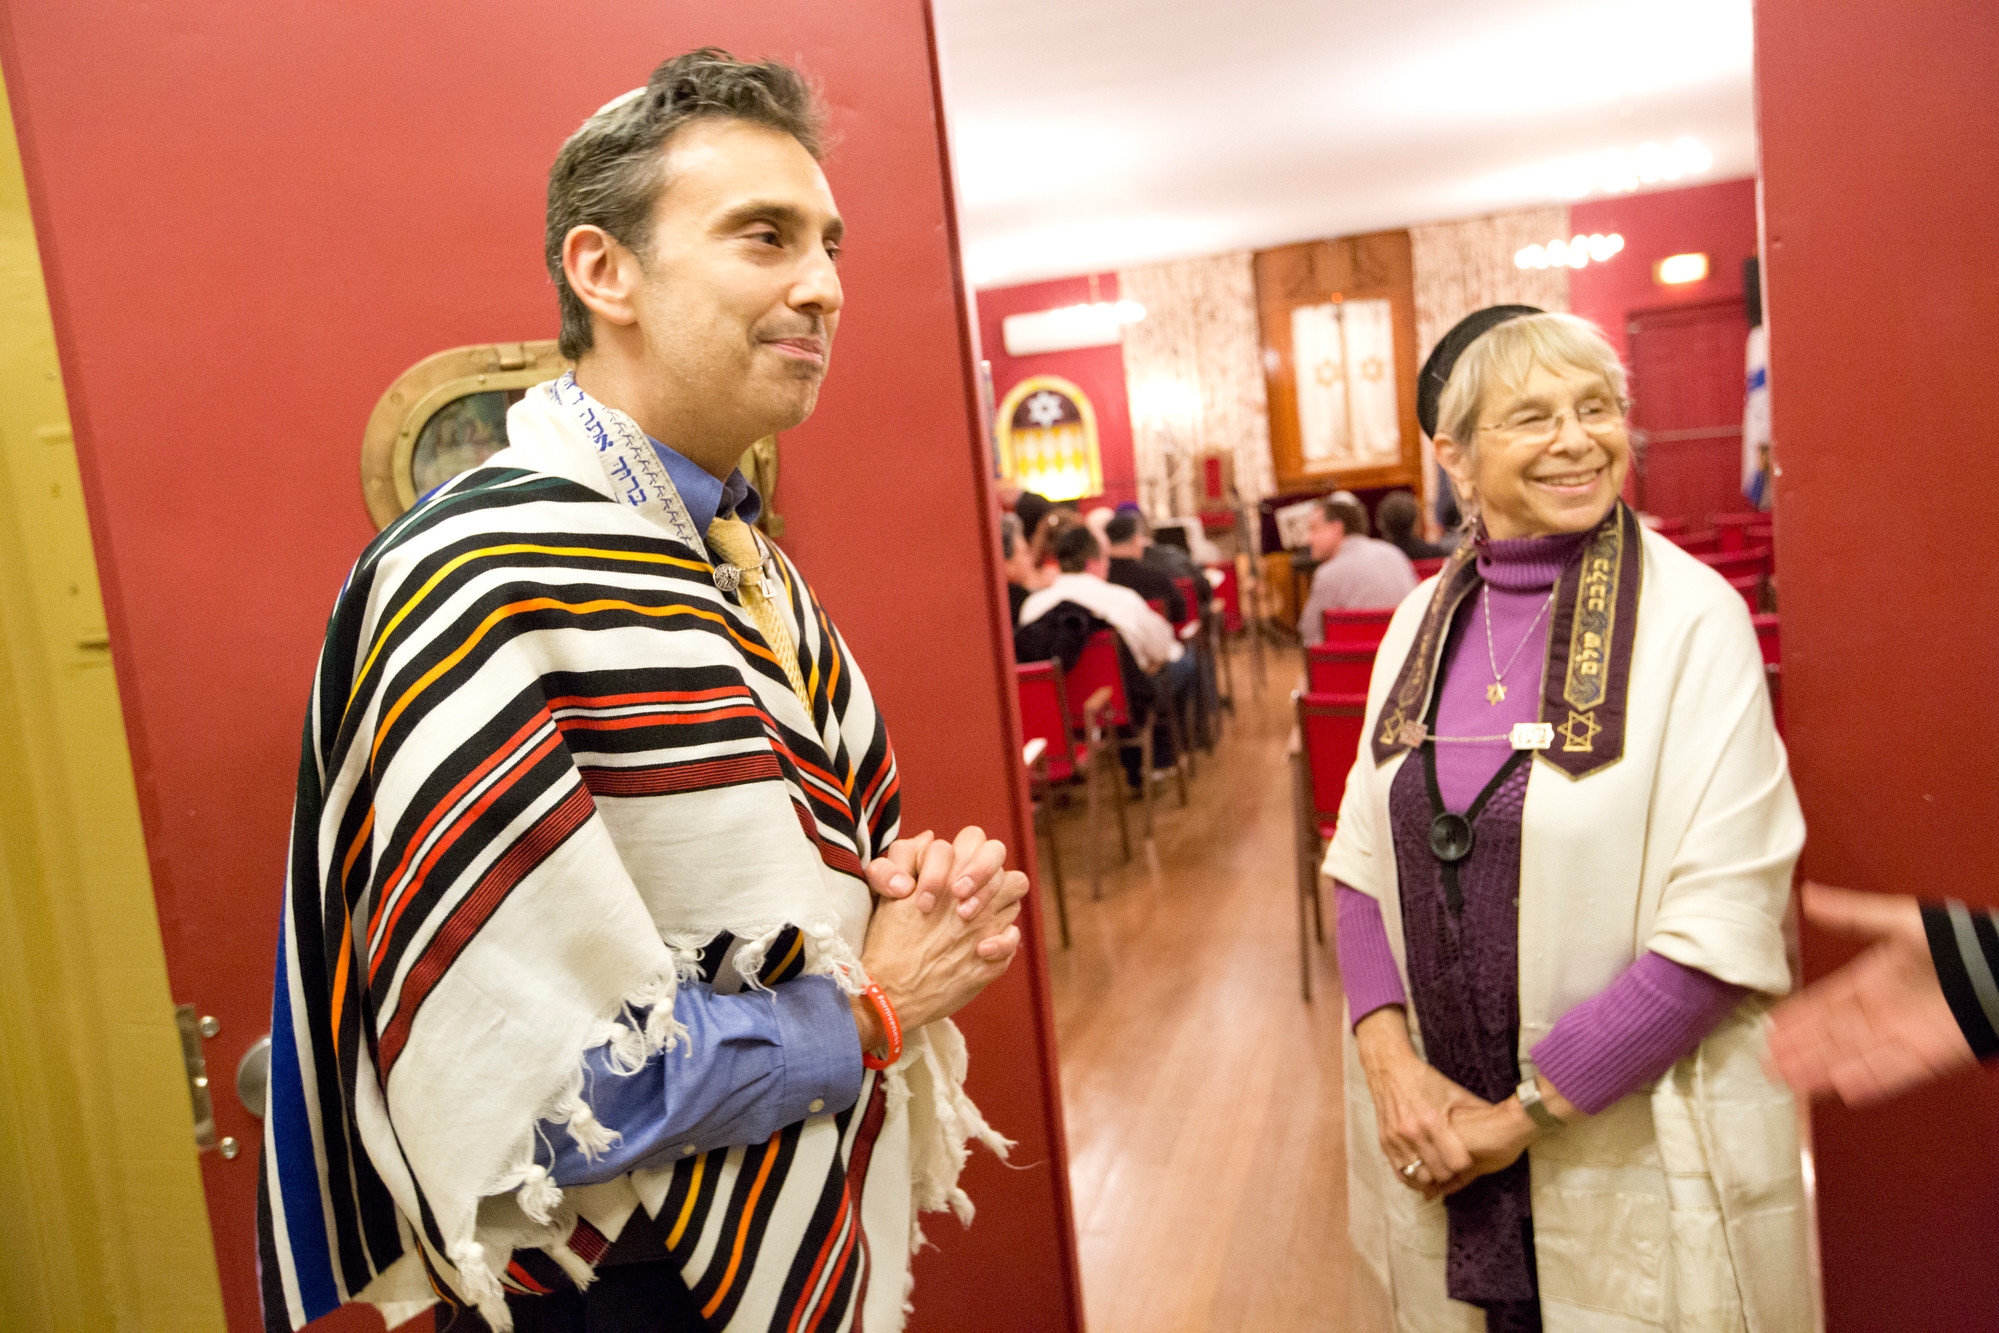 Rabbis David Markus and Shohama Wiener at Temple Beth-El of City Island on Jan. 15.